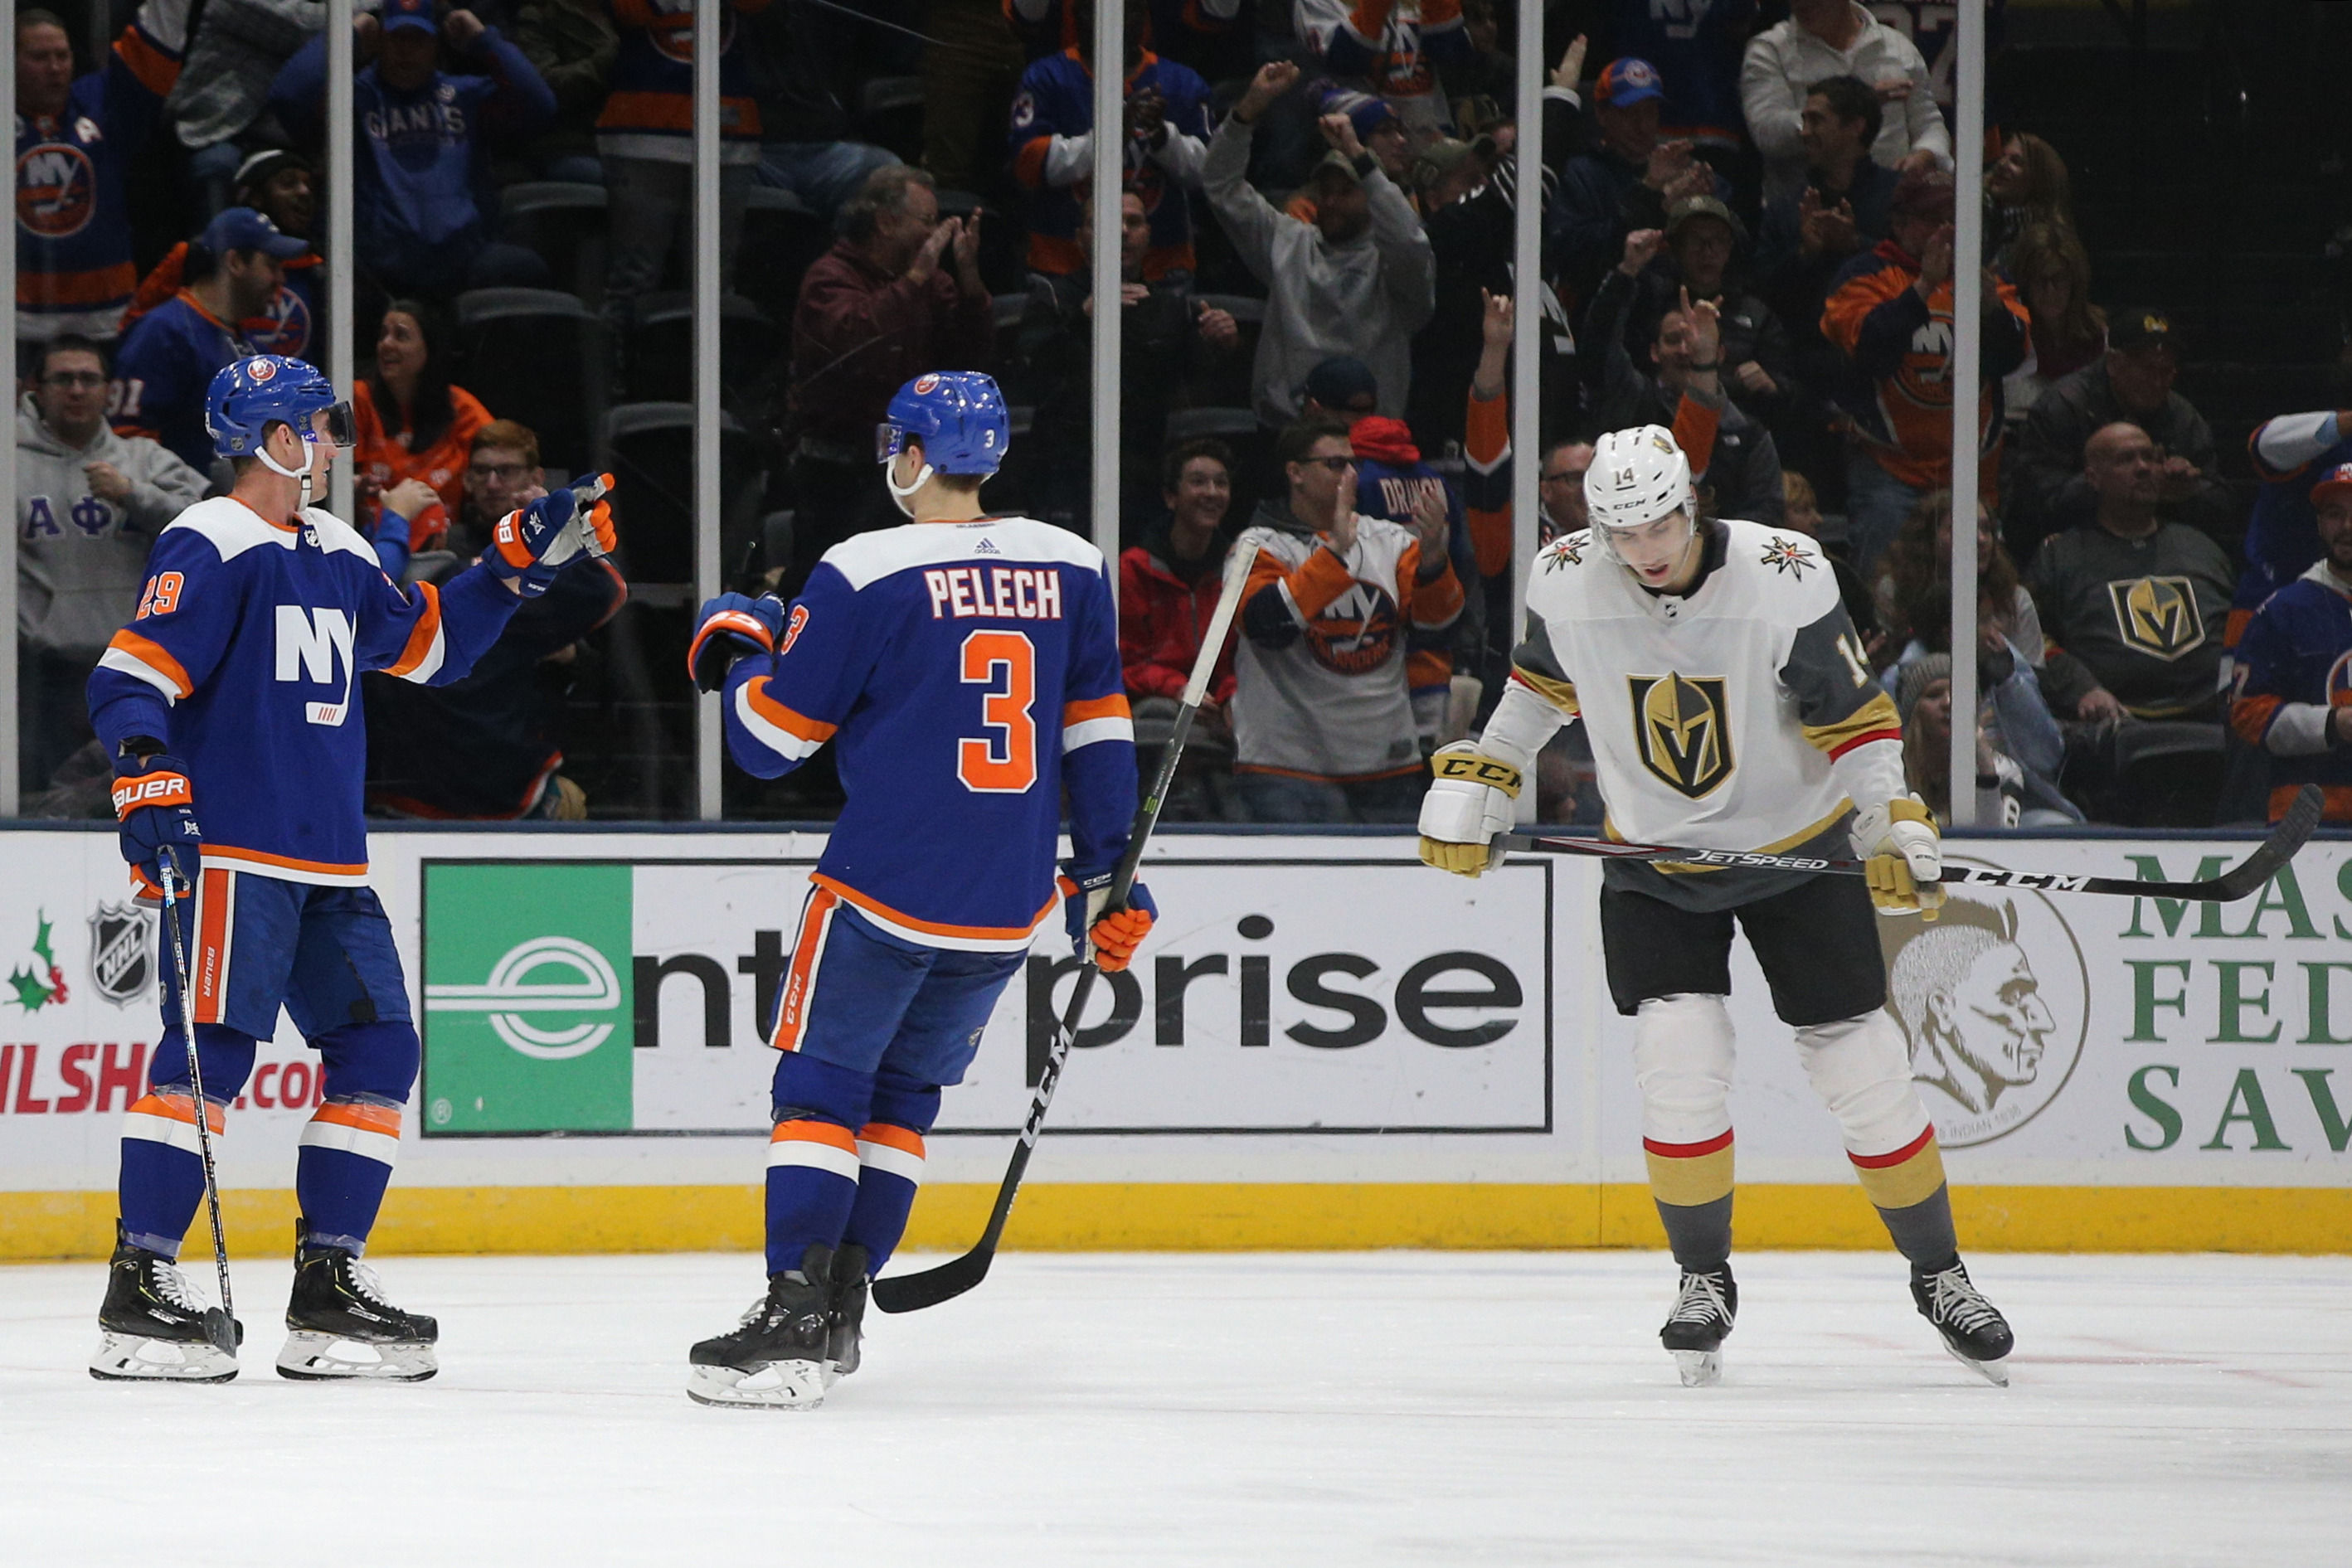 Dec 5, 2019; Uniondale, NY, USA; New York Islanders center Brock Nelson (29) celebrates with defenseman Adam Pelech (3) after scoring a goal against the Vegas Golden Knights in front of Golden Knights defenseman Nicolas Hague (14) during the third period at Nassau Veterans Memorial Coliseum. Mandatory Credit: Brad Penner-USA TODAY Sports